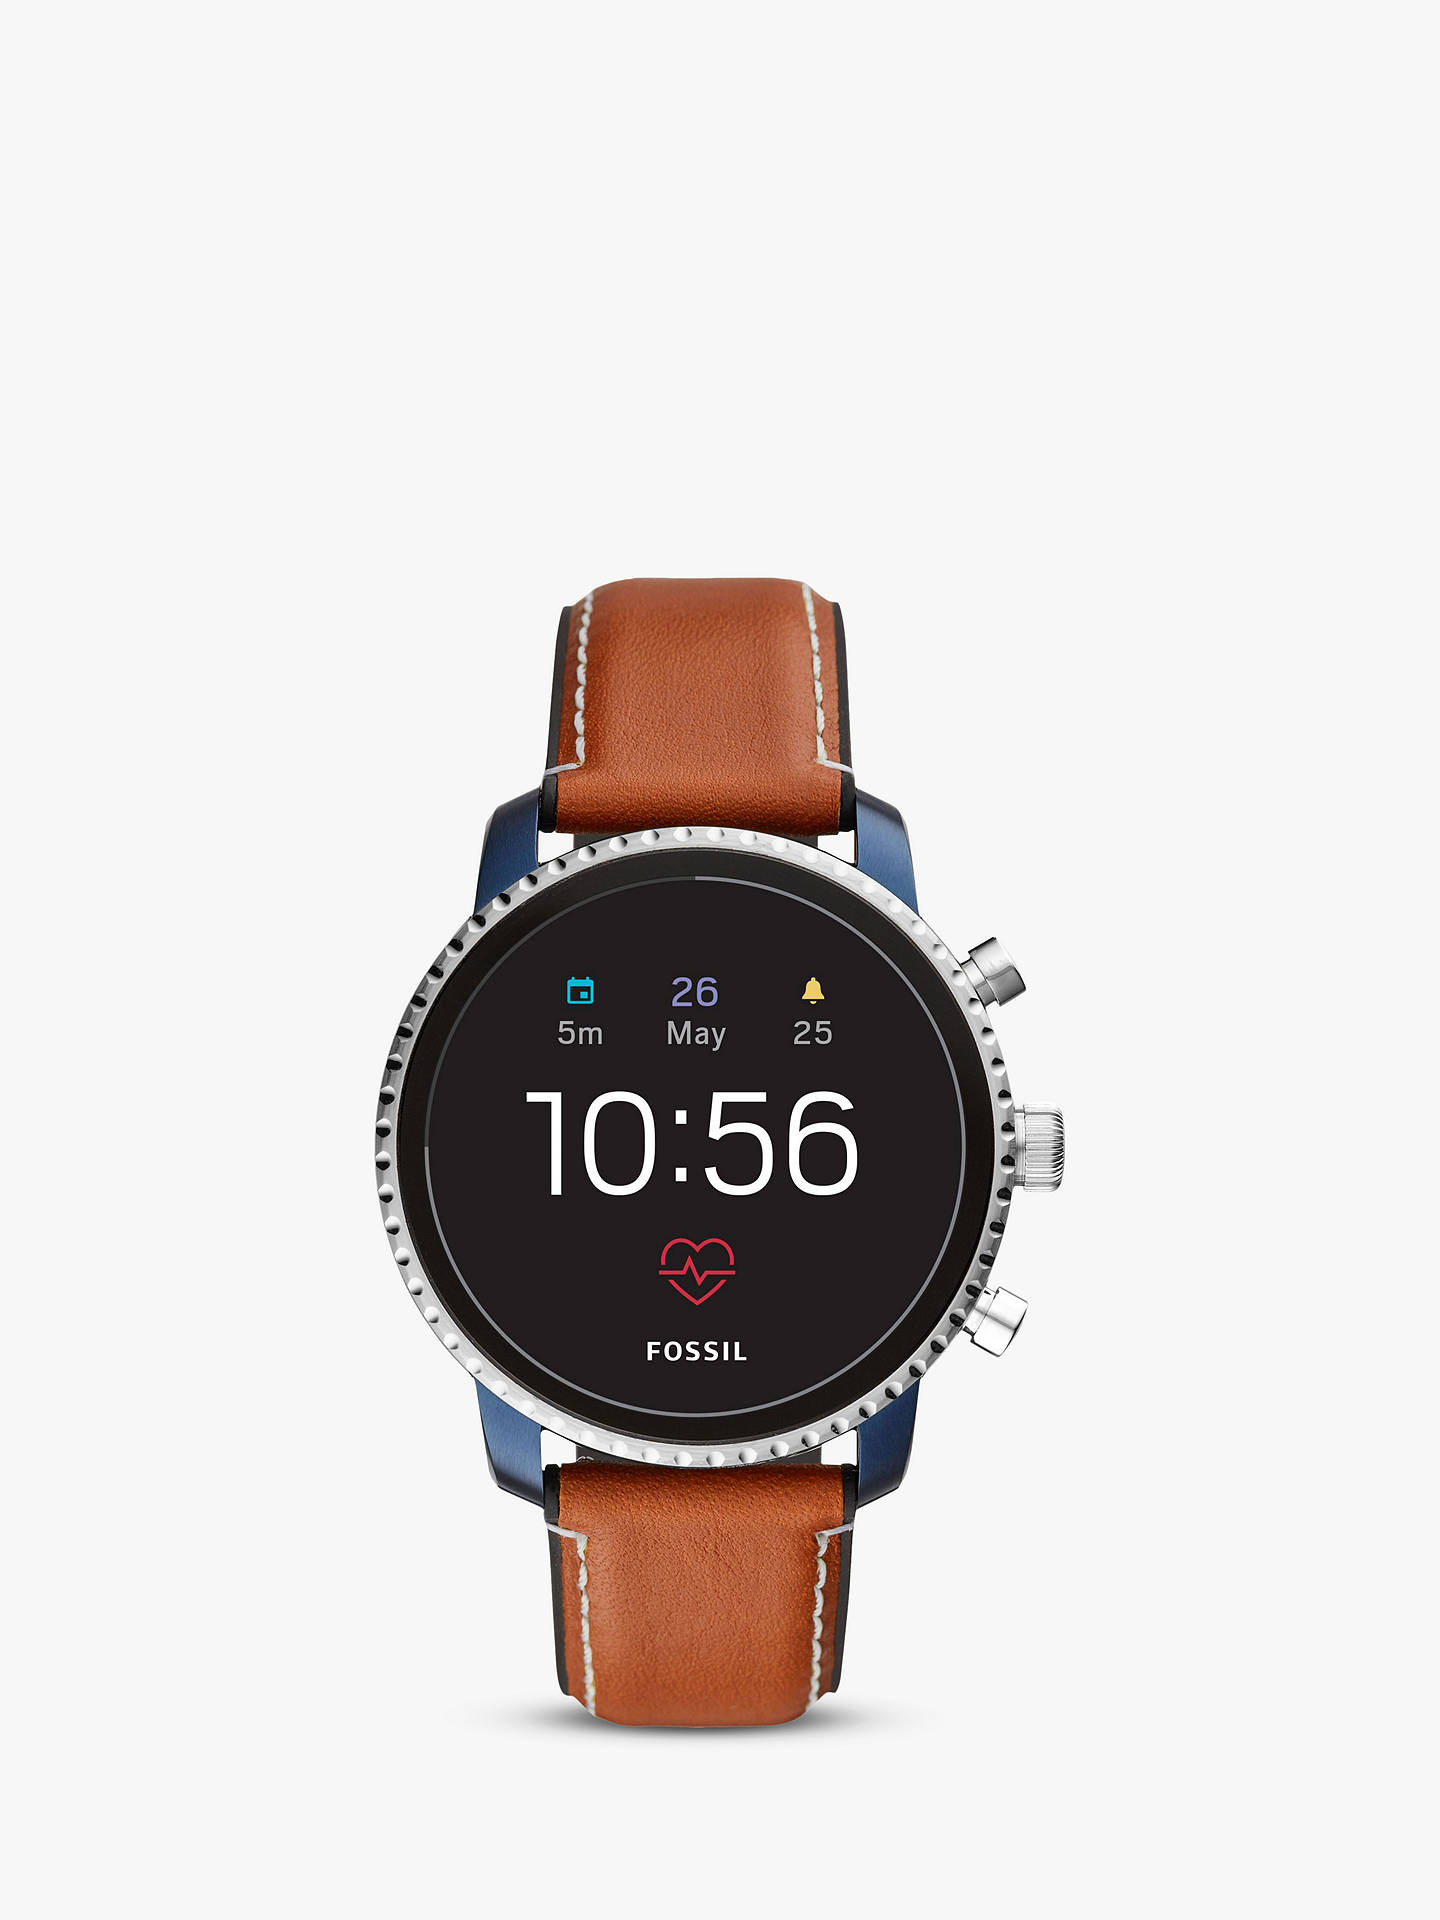 Buy Fossil Q FTW4016 Men's Explorist Leather Strap Touch Screen Smartwatch, Tan/Black Online at johnlewis.com